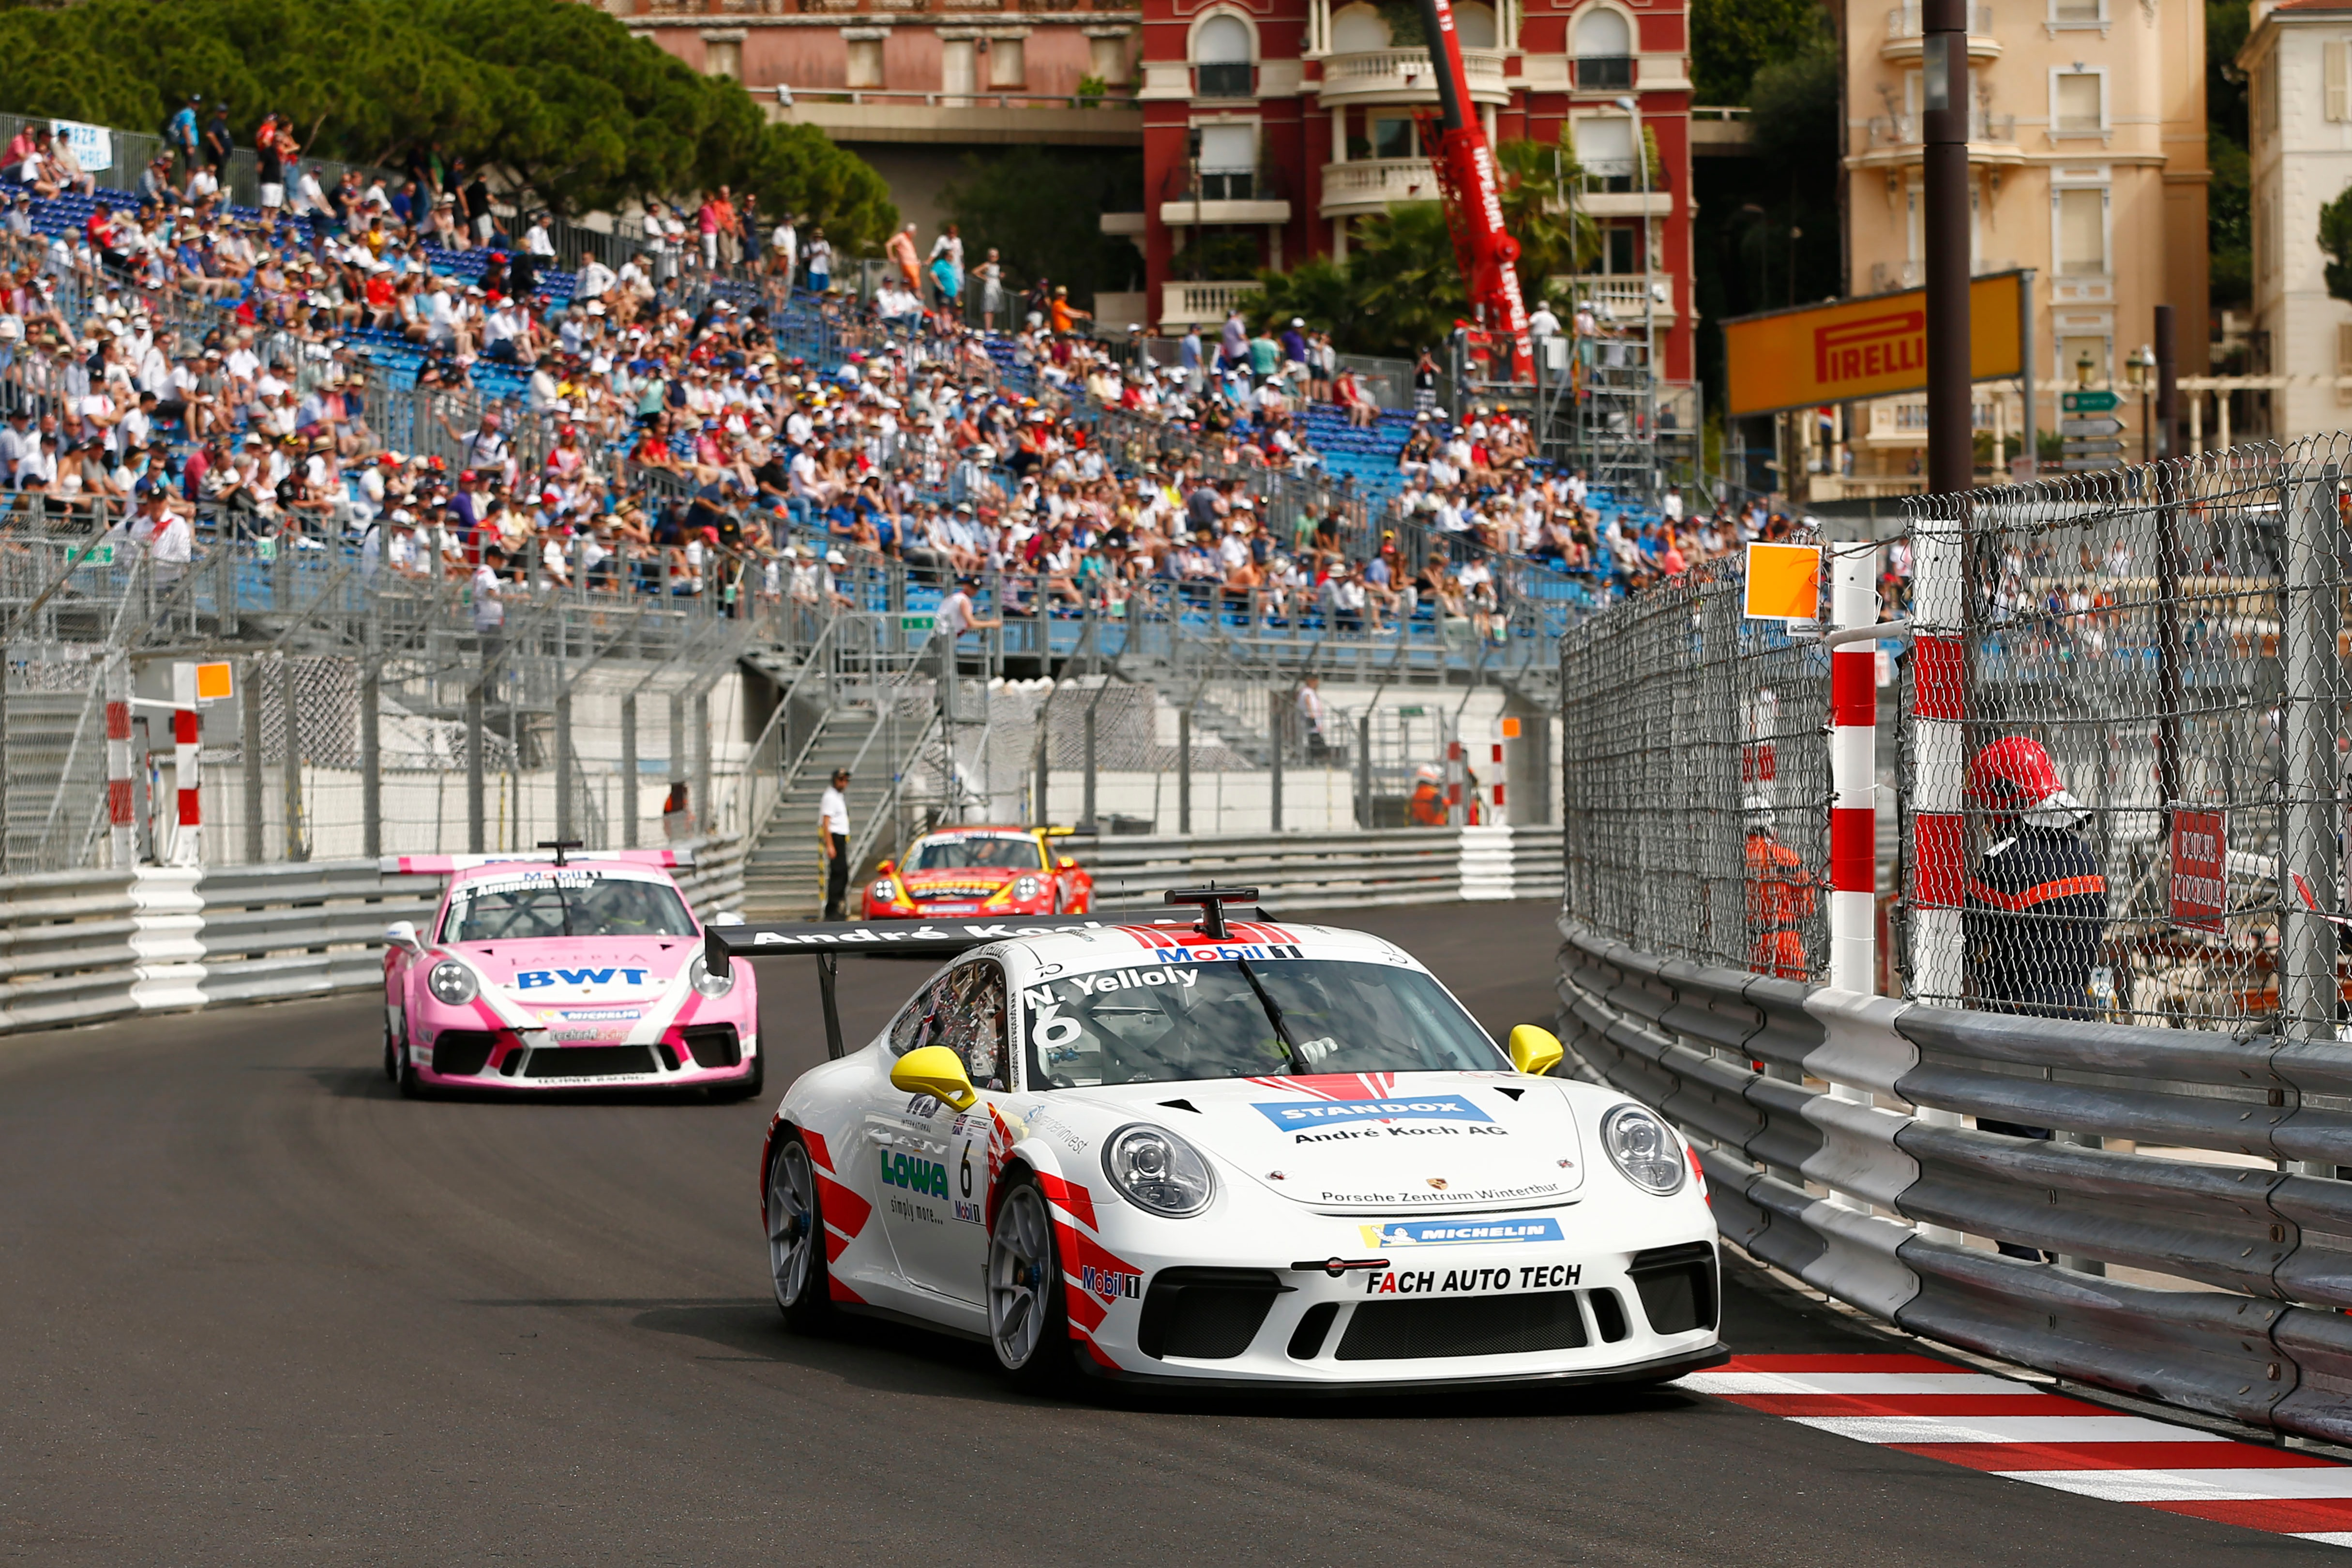 Victory at Monaco in the 2018 Supercup race helped clinch BMW factory deal in GT3 racing